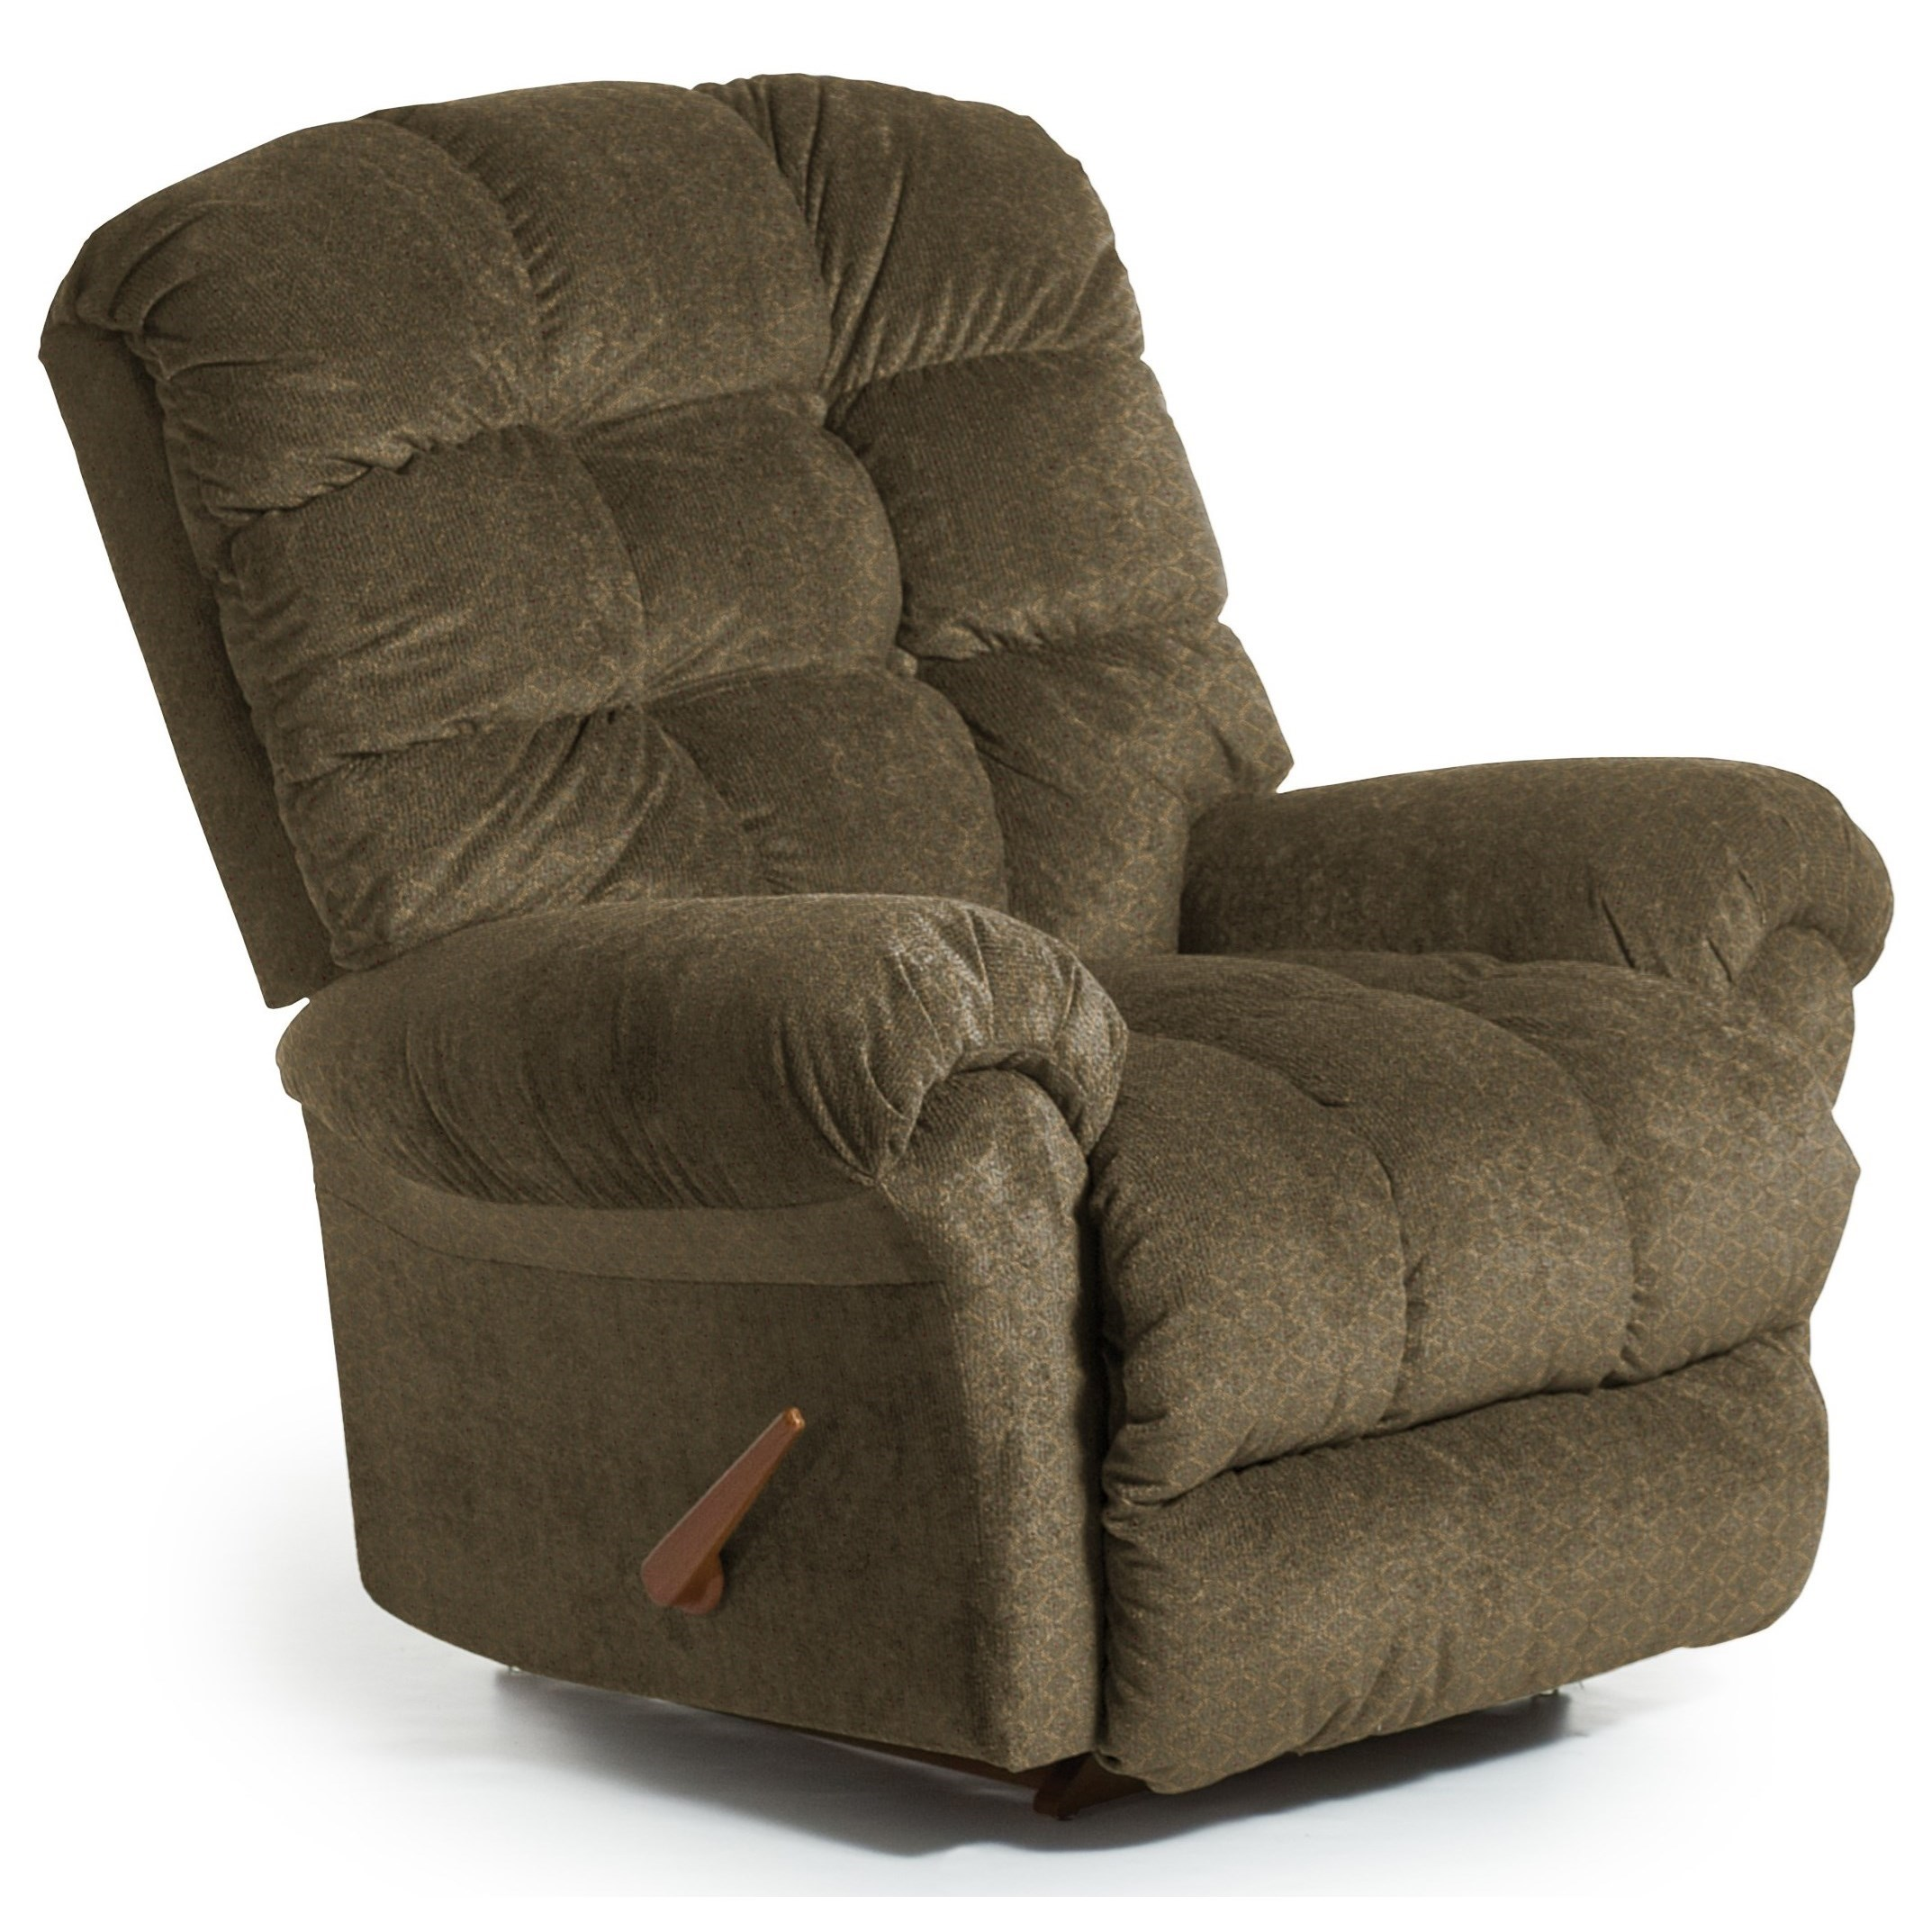 Recliners - BodyRest BodyRest Rocker Recliner by Best Home Furnishings at Prime Brothers Furniture